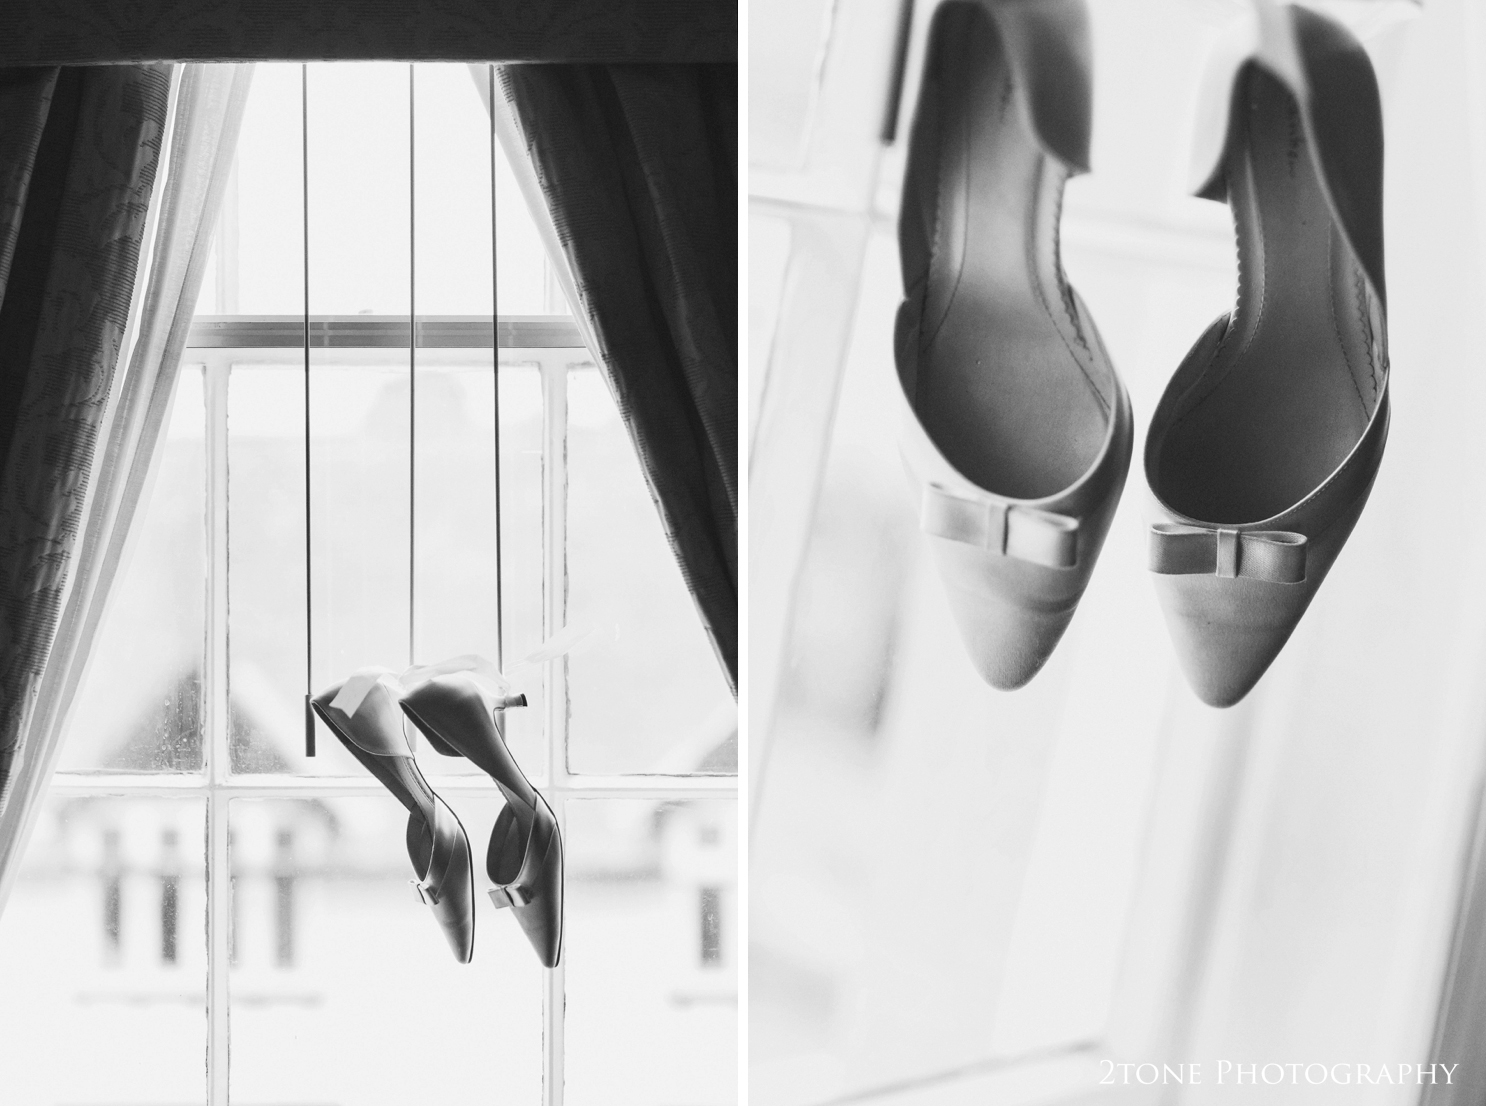 Sarah's wedding shoes by Rainbow hanging in the windows of the Royal County Marriott Hotel in Durham.